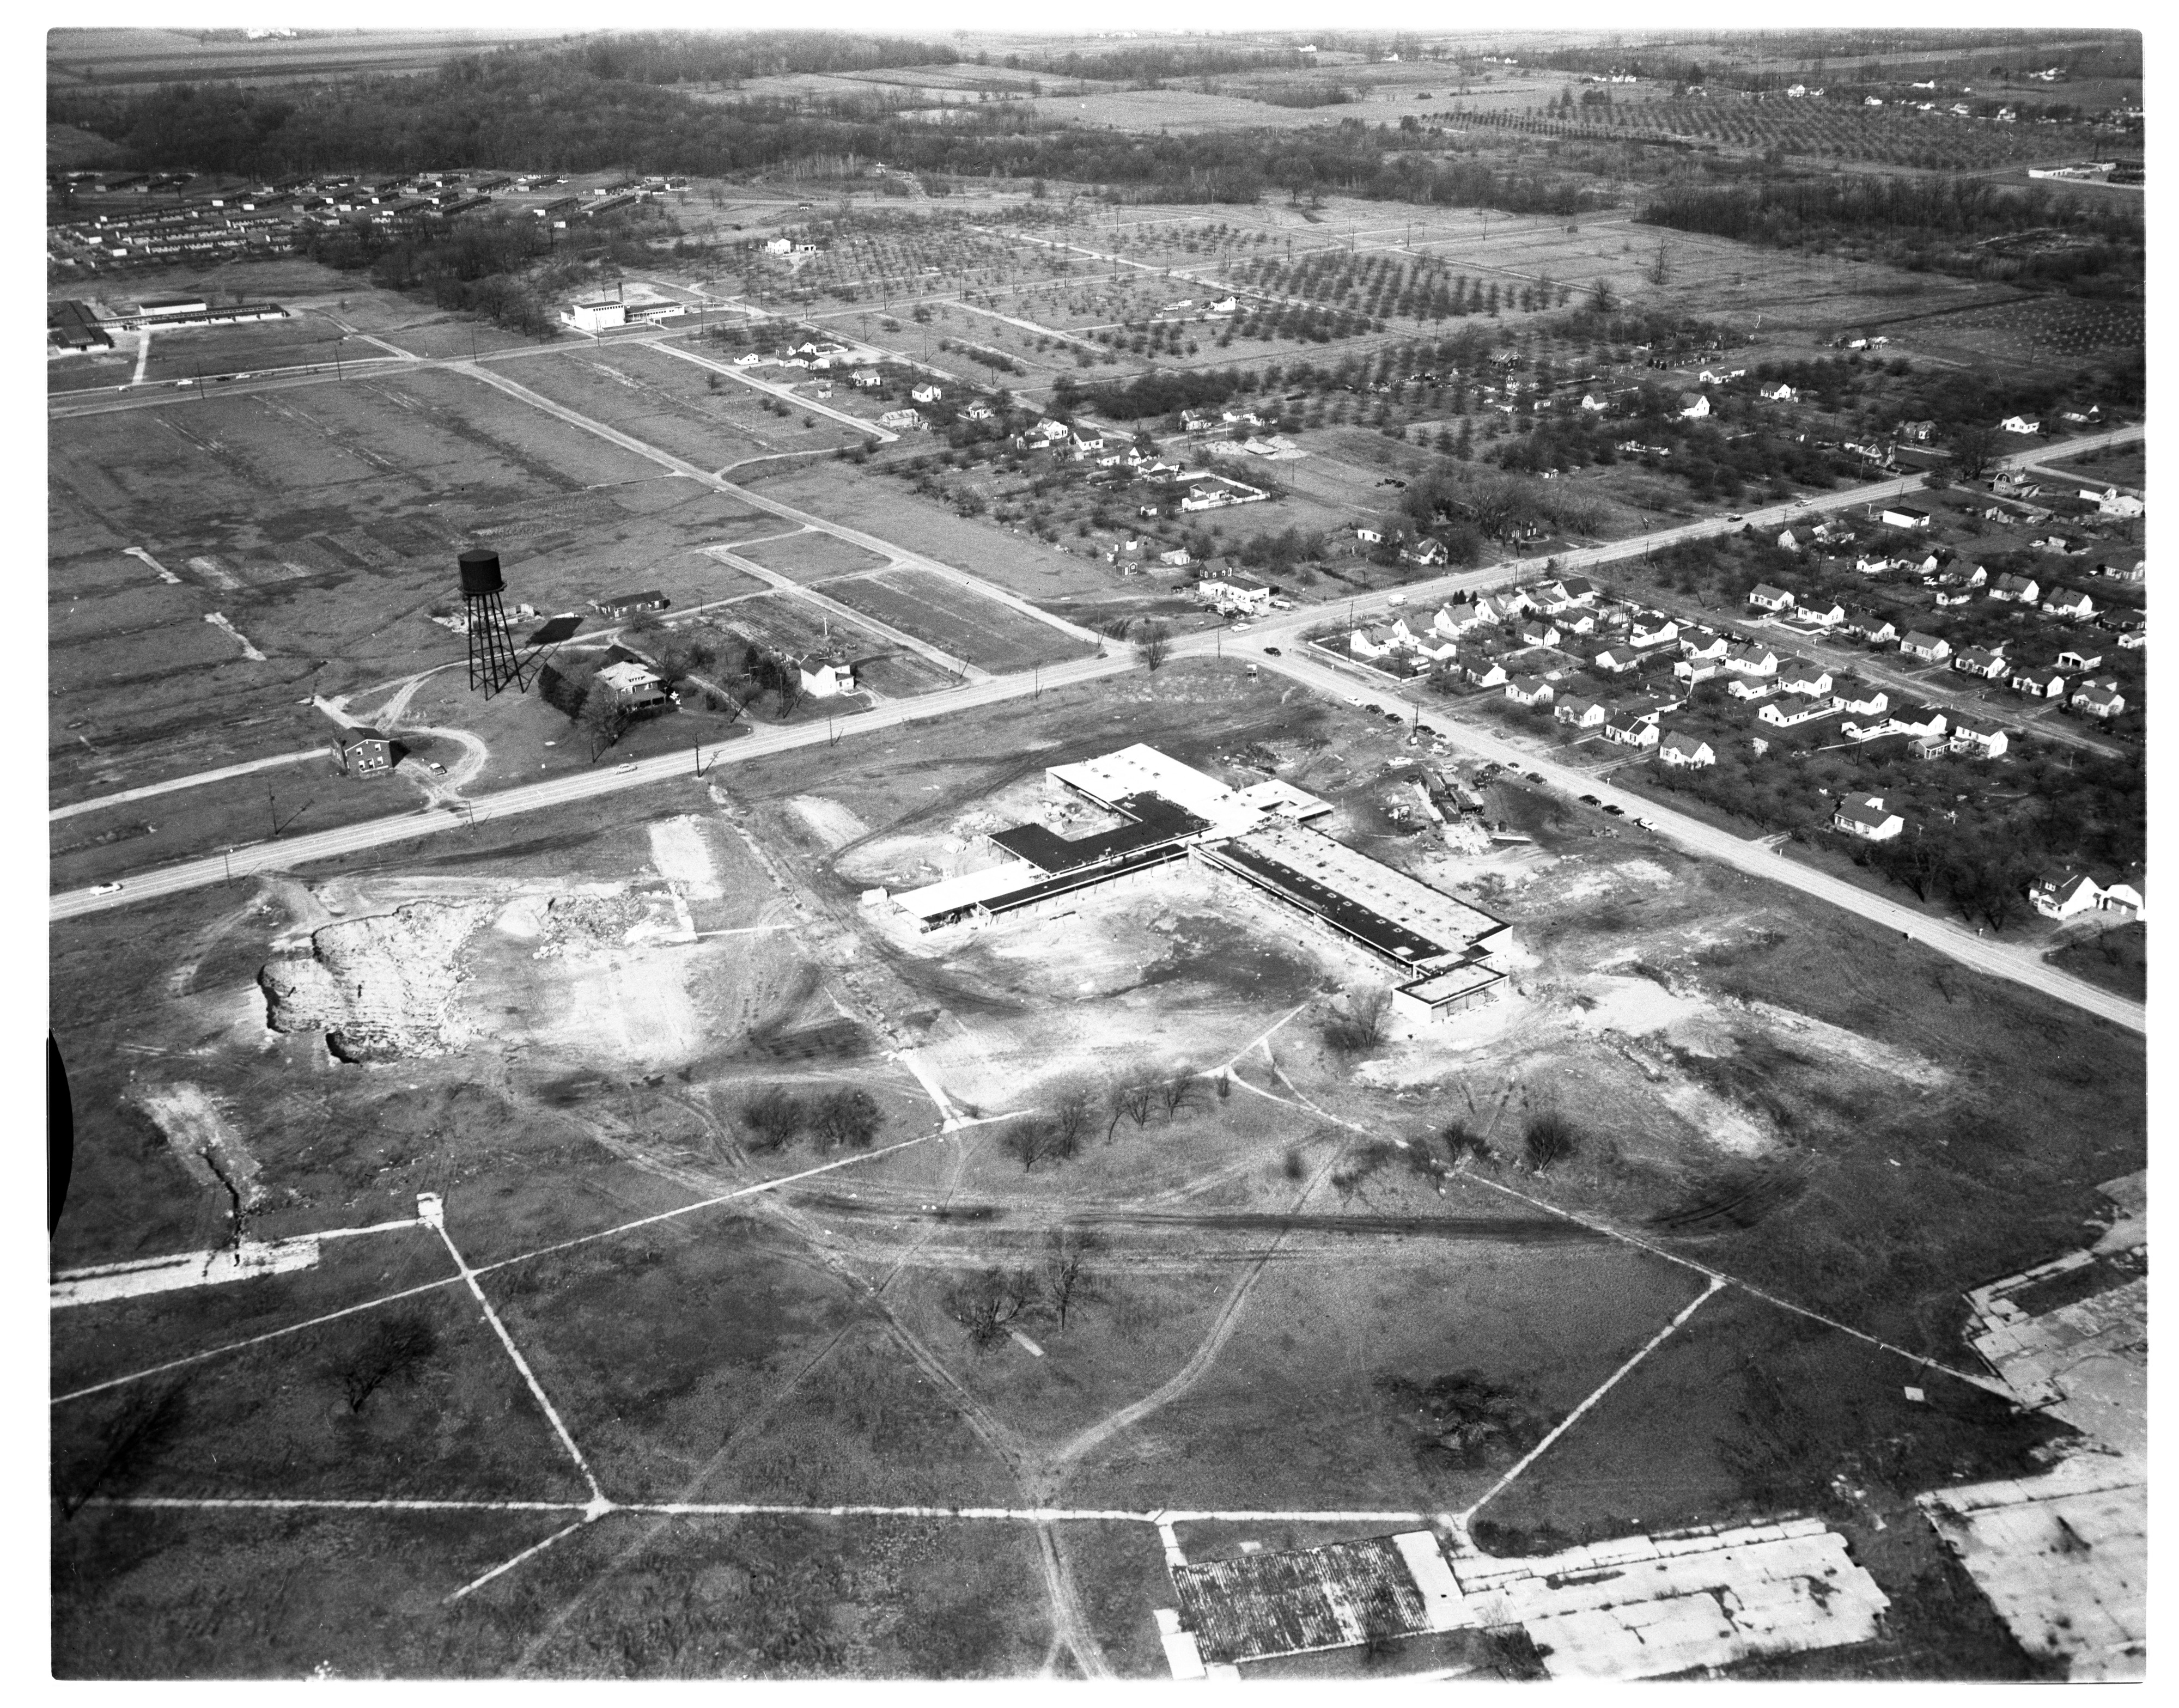 Aerial Photograph of Willow Run High School, Ypsilanti Township, March 1955 image